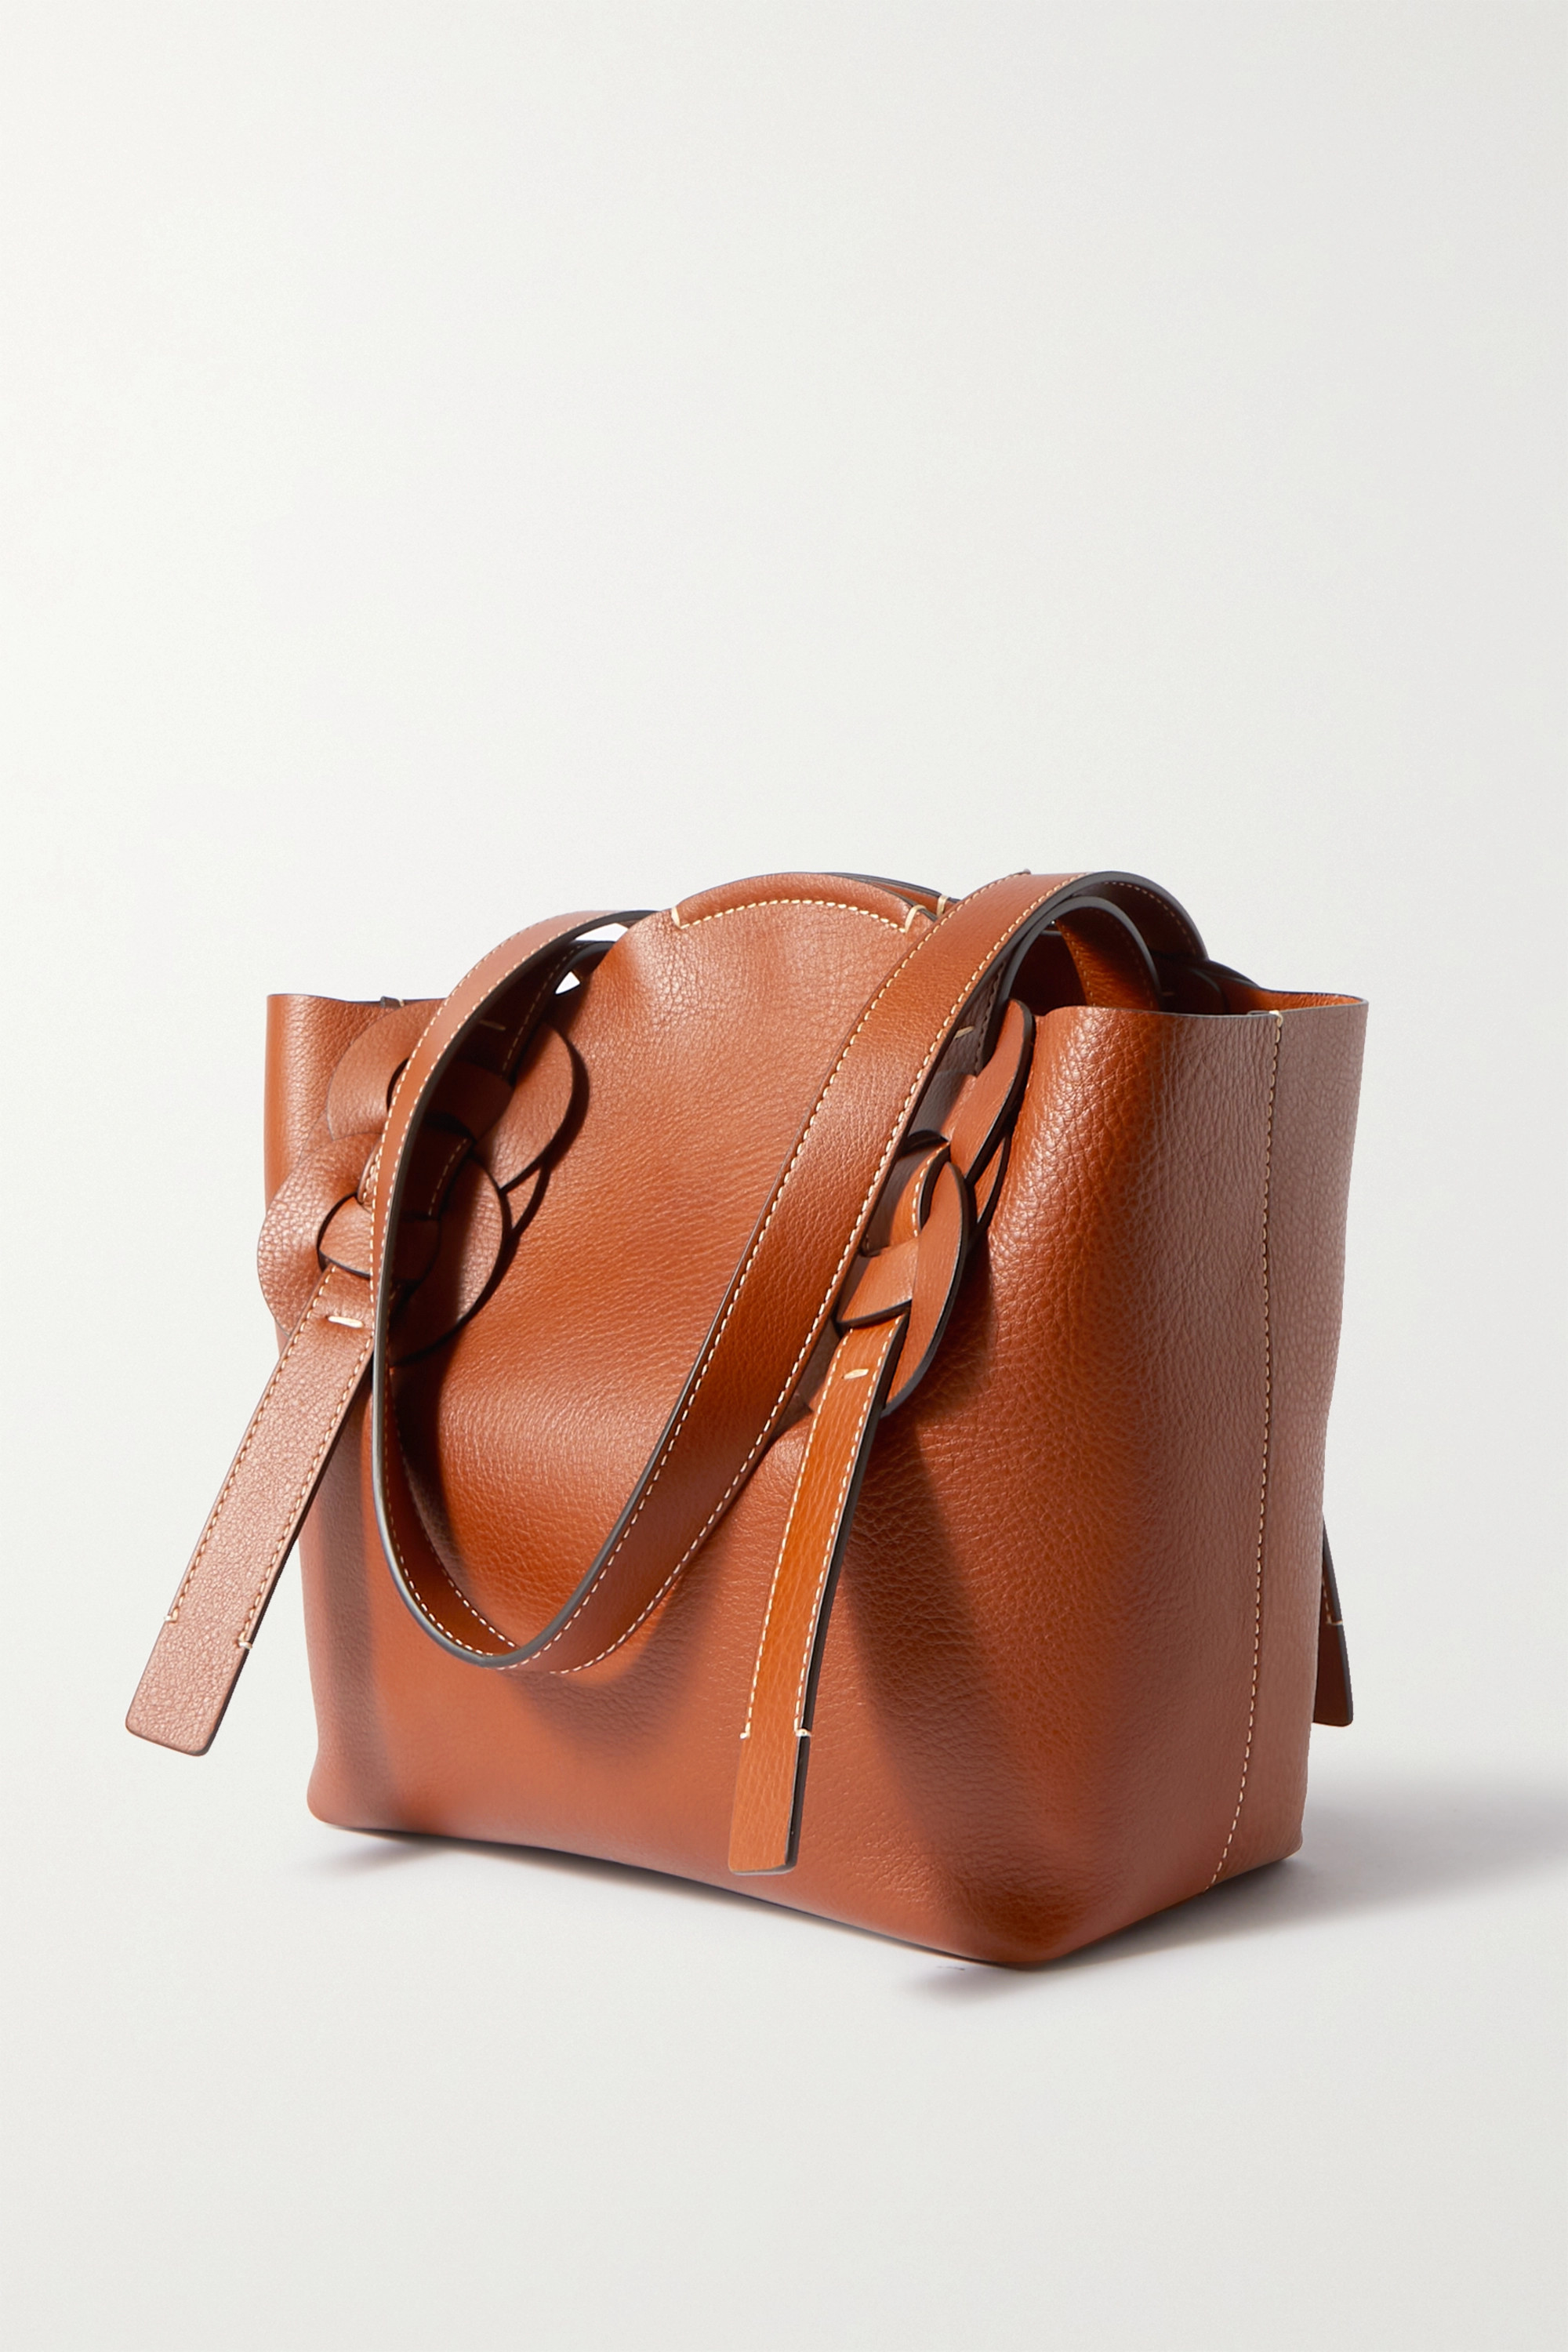 Chloé Darryl small braided textured-leather tote